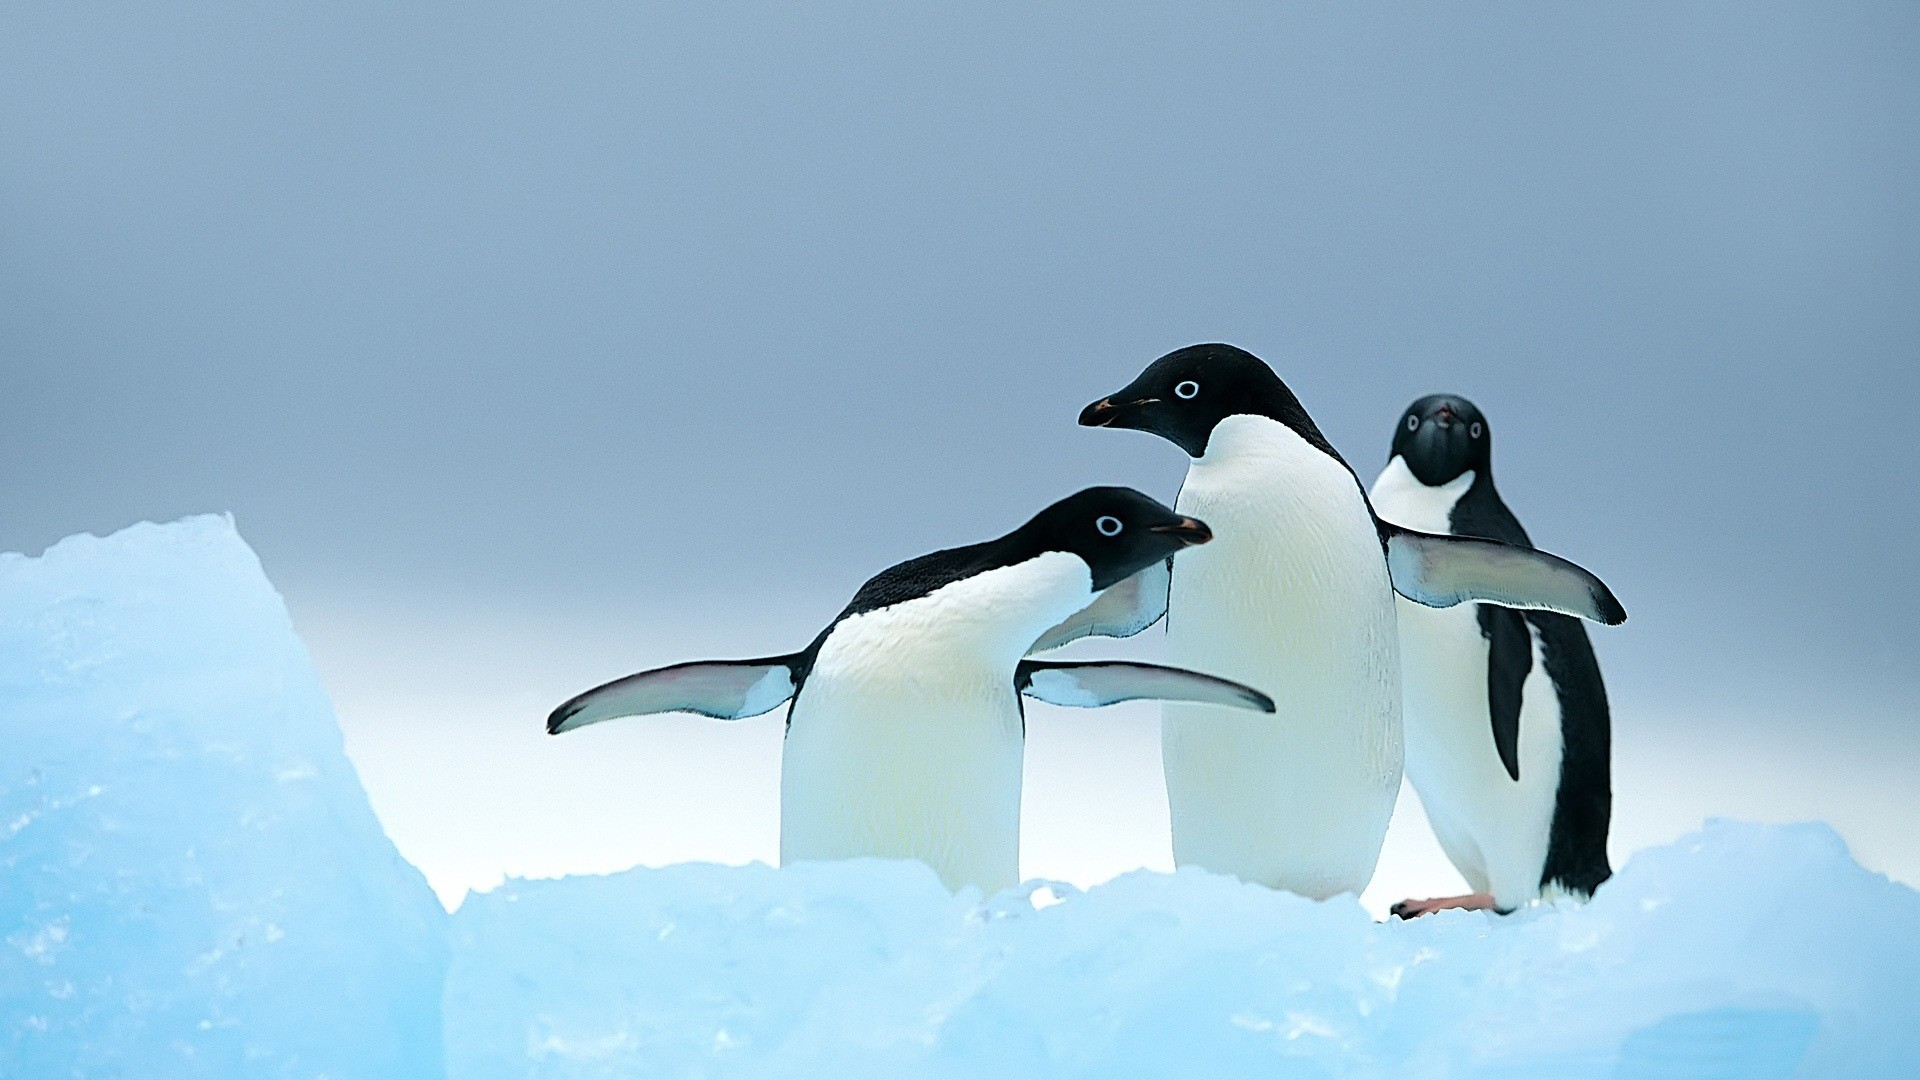 1920x1080 Cute penguins desktop wallpaper - photo#23